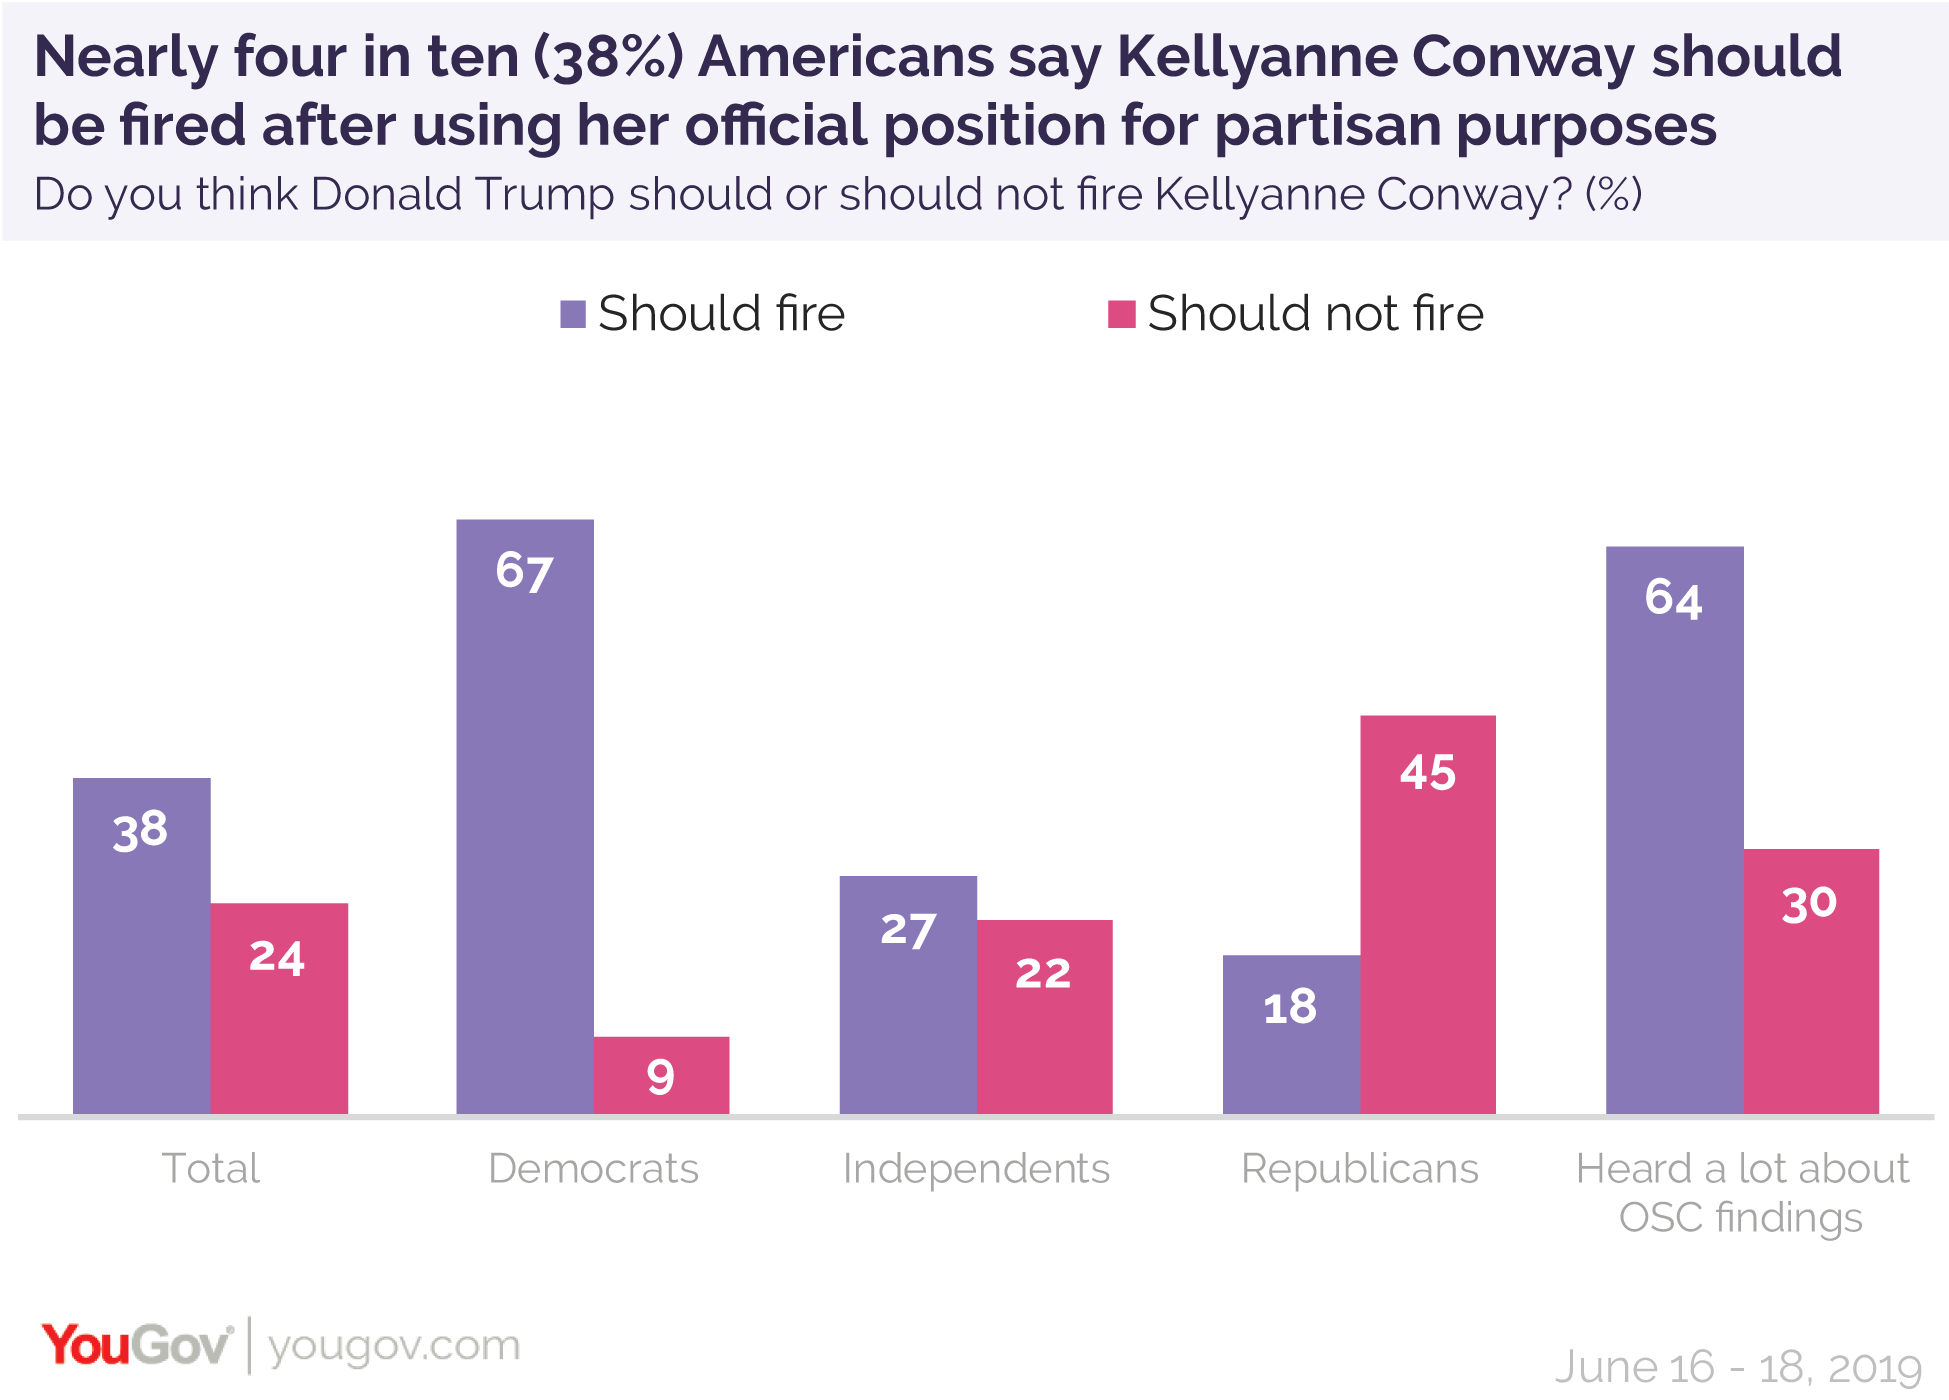 Nearly four in ten Americans say Kellyanne Conway should be fired after using her official position for partisan purposes